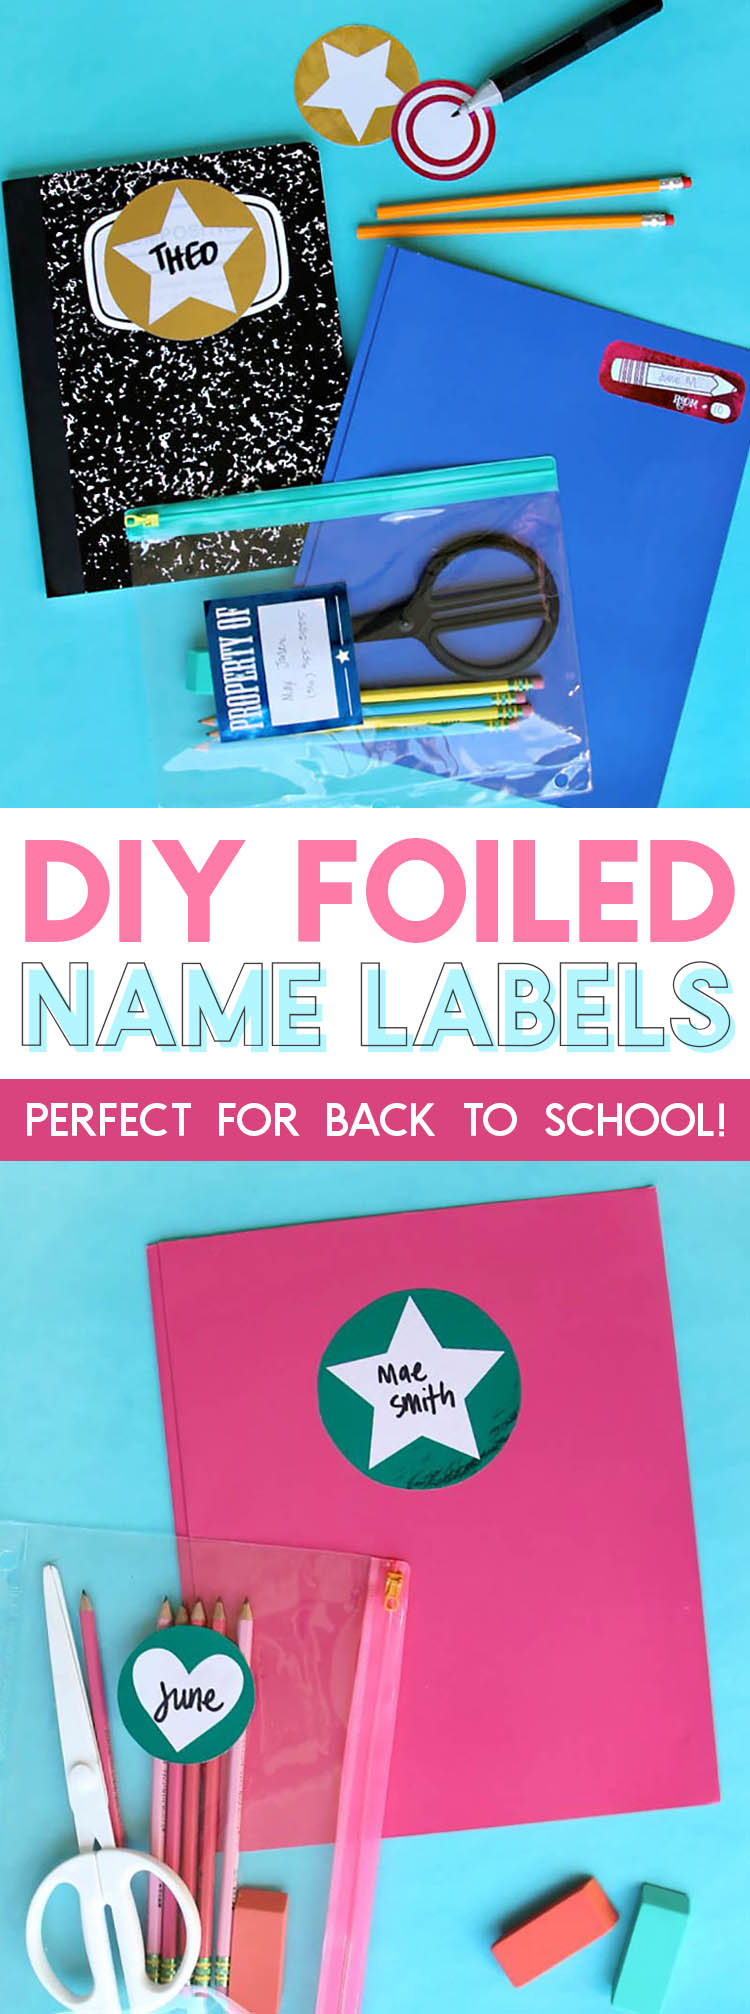 diy foiled name labels for labeling school supplies